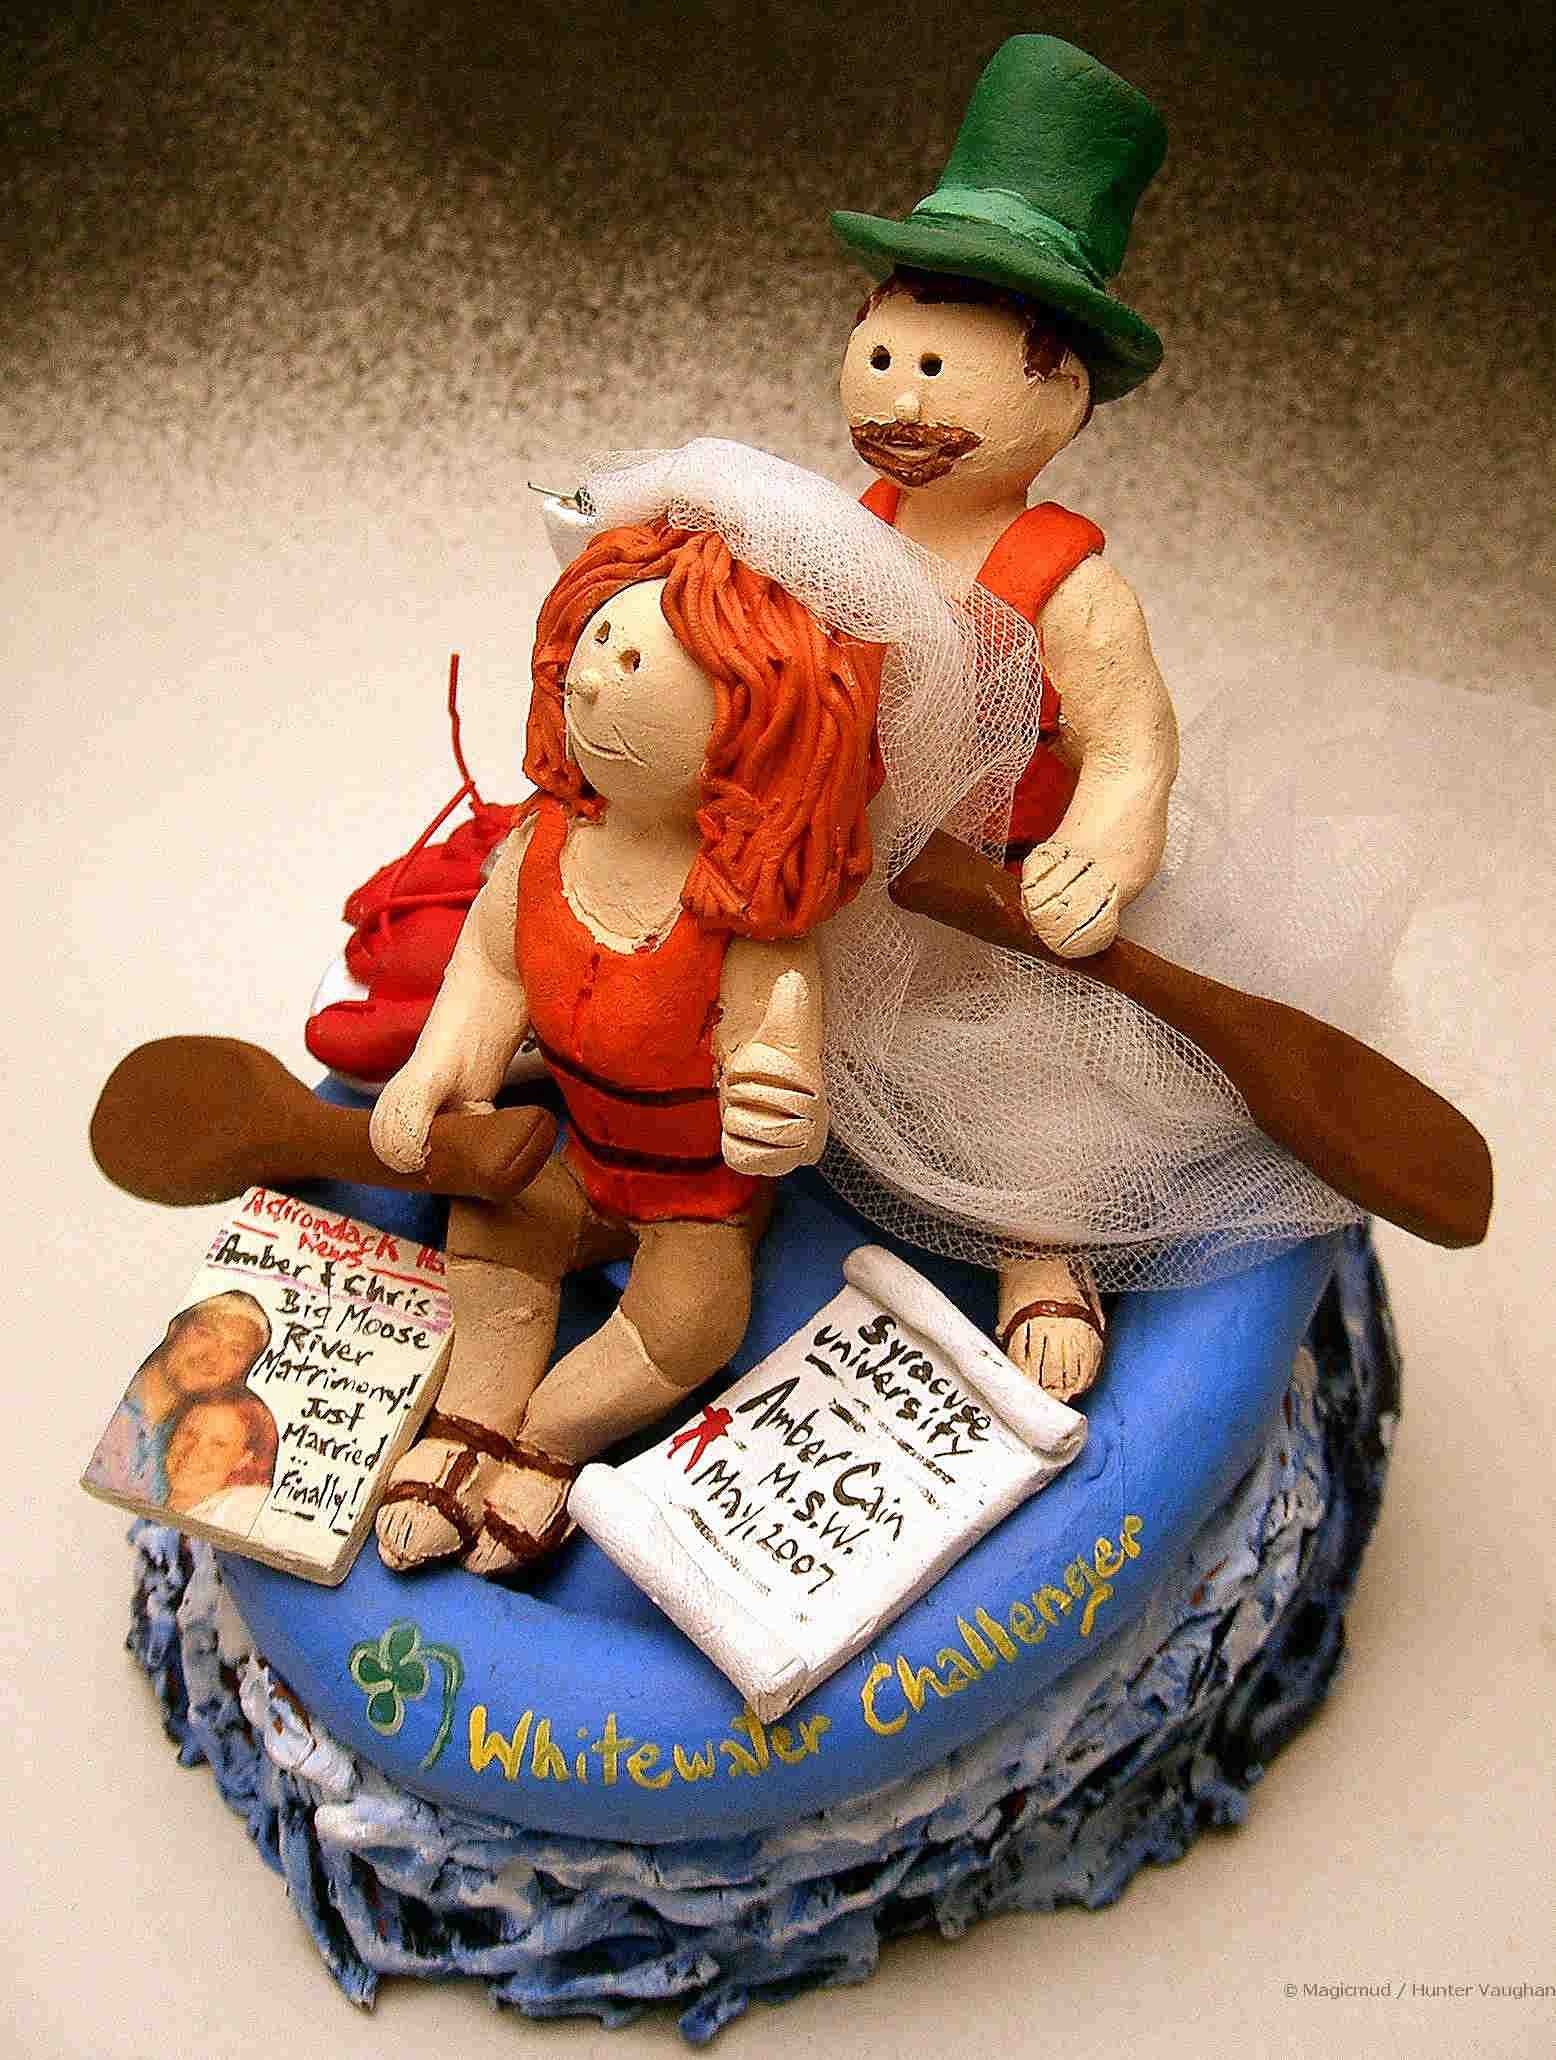 Whitewater Rafter's Wedding Cake Topper